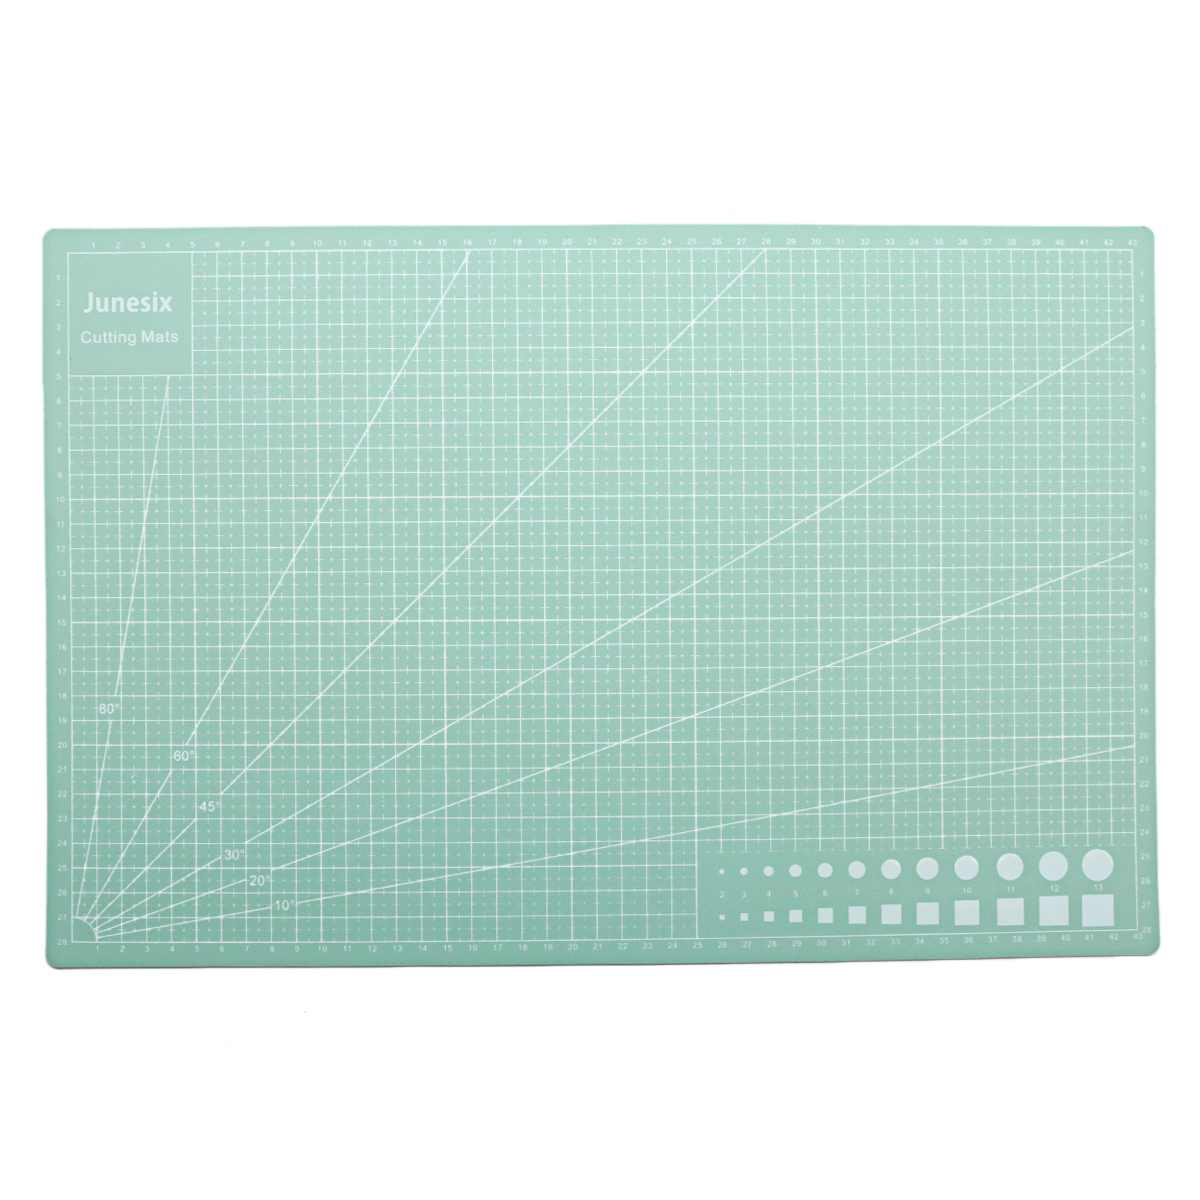 Sewing and All Arts/  12x12 StandardGrip Cutting Mat for Cricut Explore One//Air//Air 2//Maker 3 Mats Quilting ,Cut Mat for Crafts